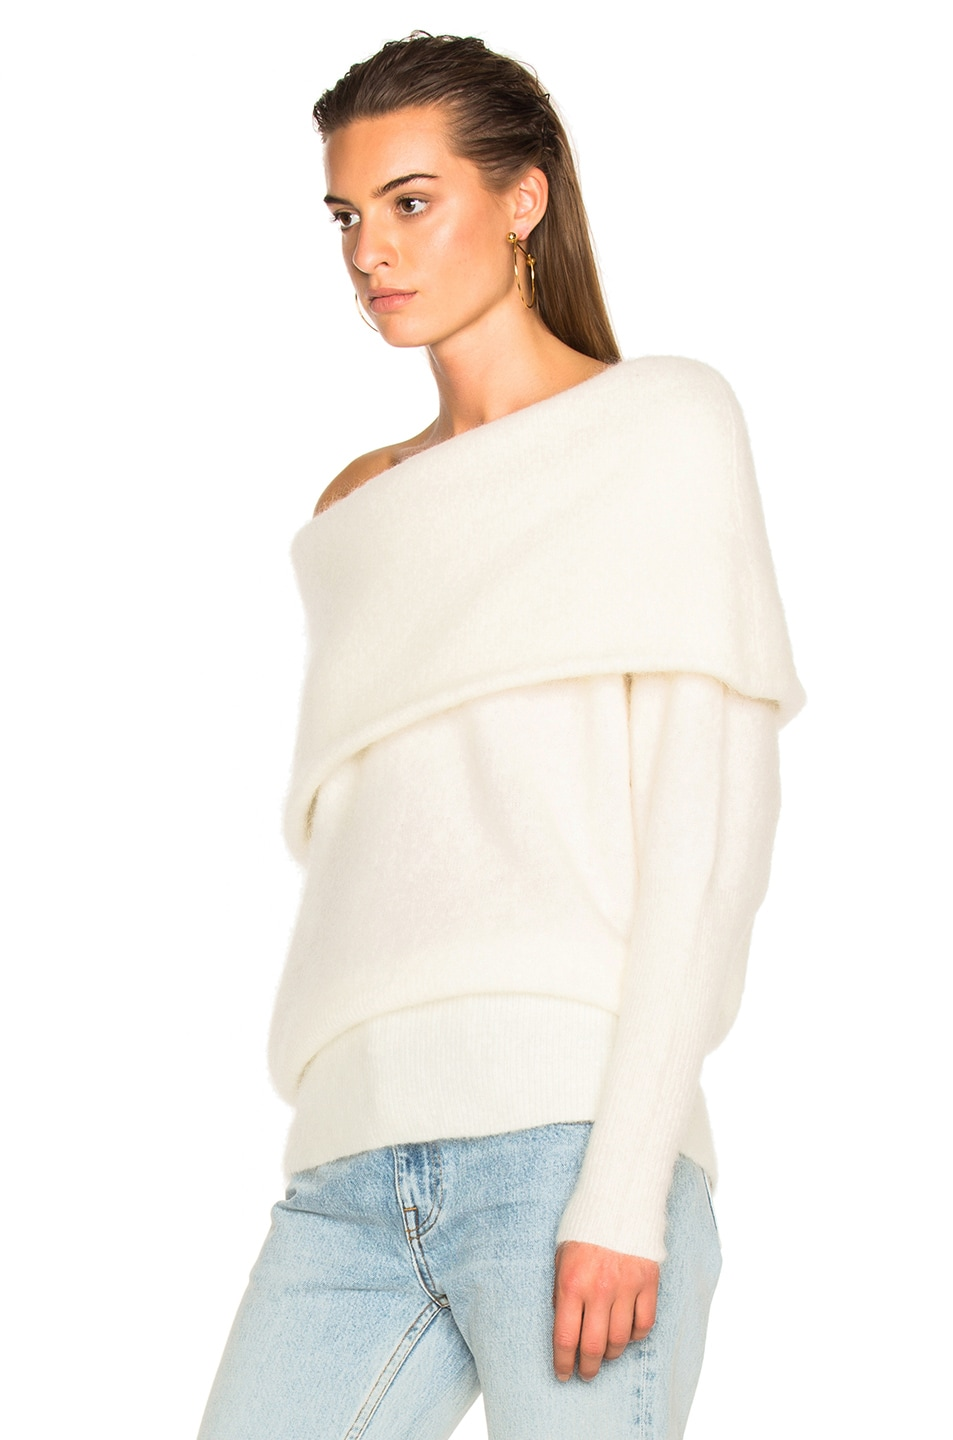 be5a8487cb25 Image 2 of Acne Studios Daze Sweater Pearl White in Pearl White